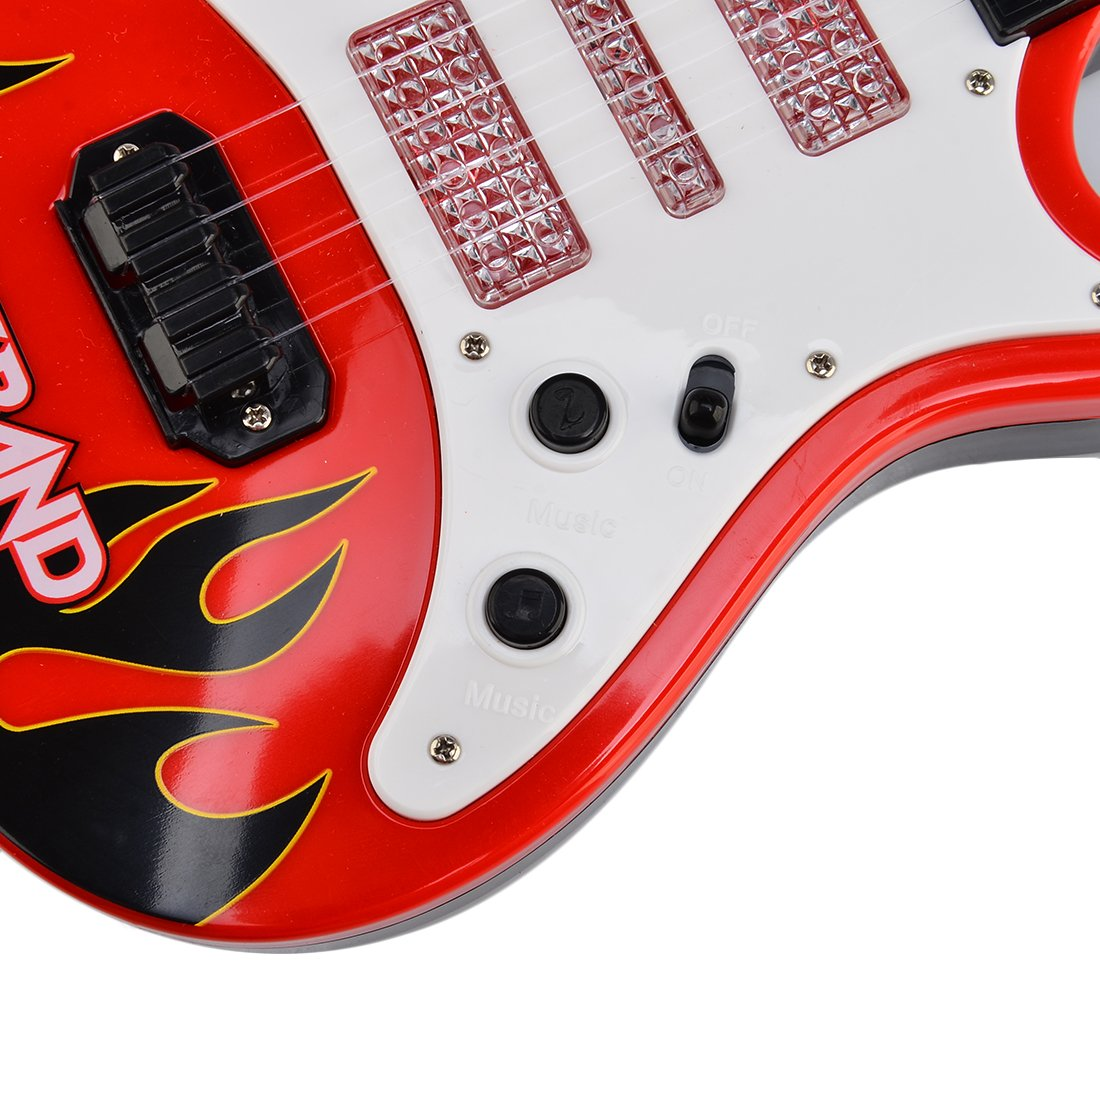 Red Flame RuiyiF Guitar for Toddler Kids Beginners Toy Guitar for Boys Girls 21Inch